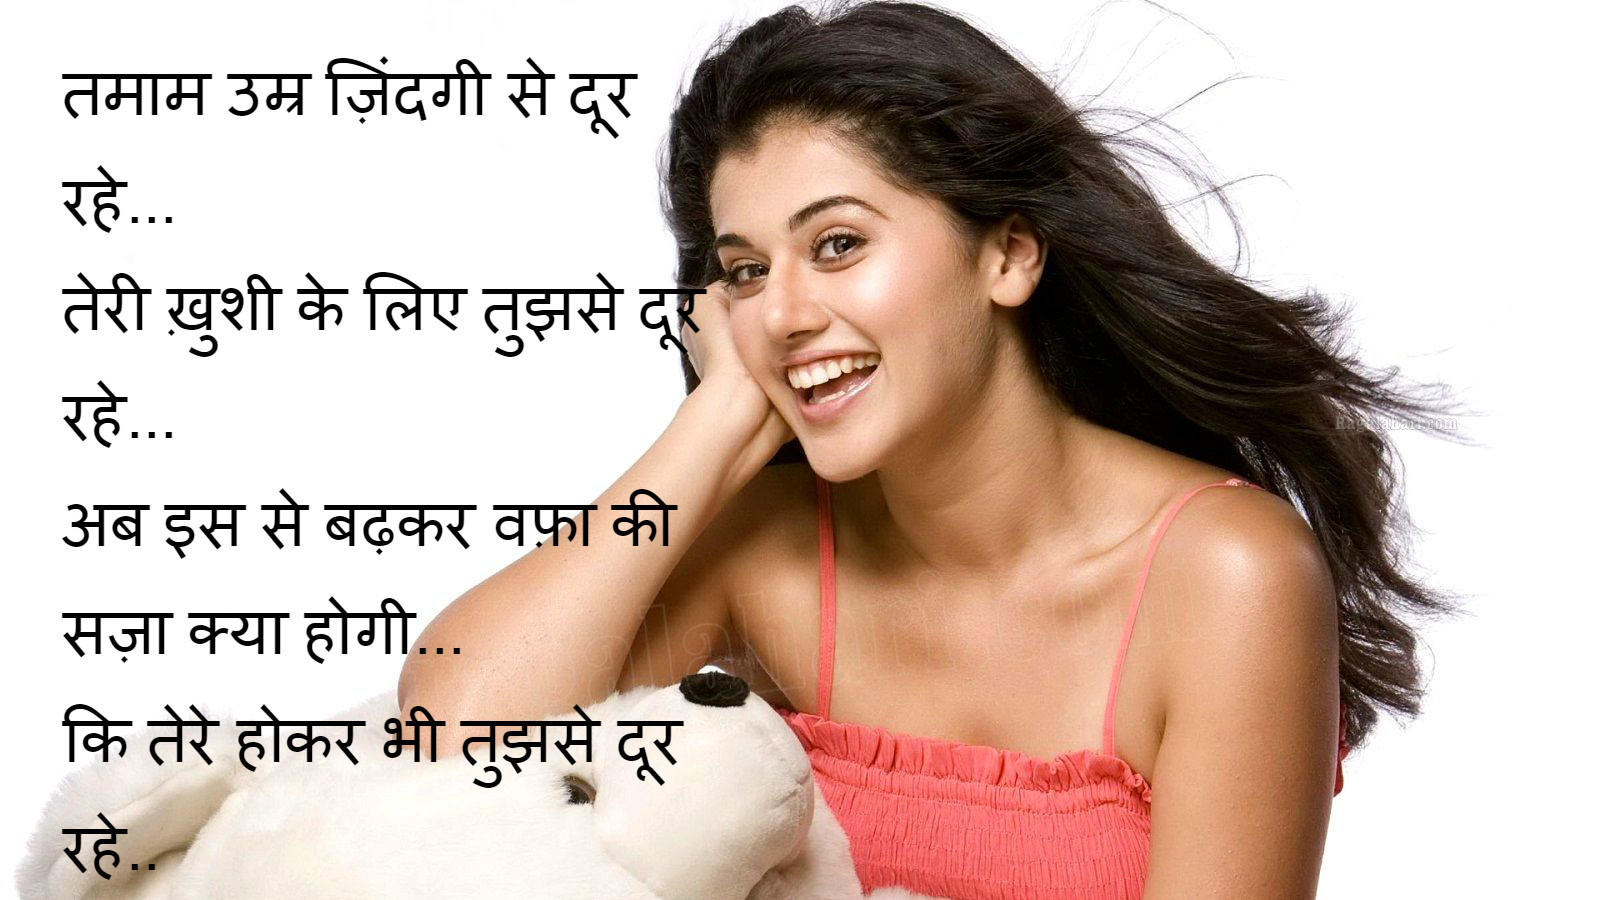 Wallpaper download love shayri - Love Hi Love Shayari Images